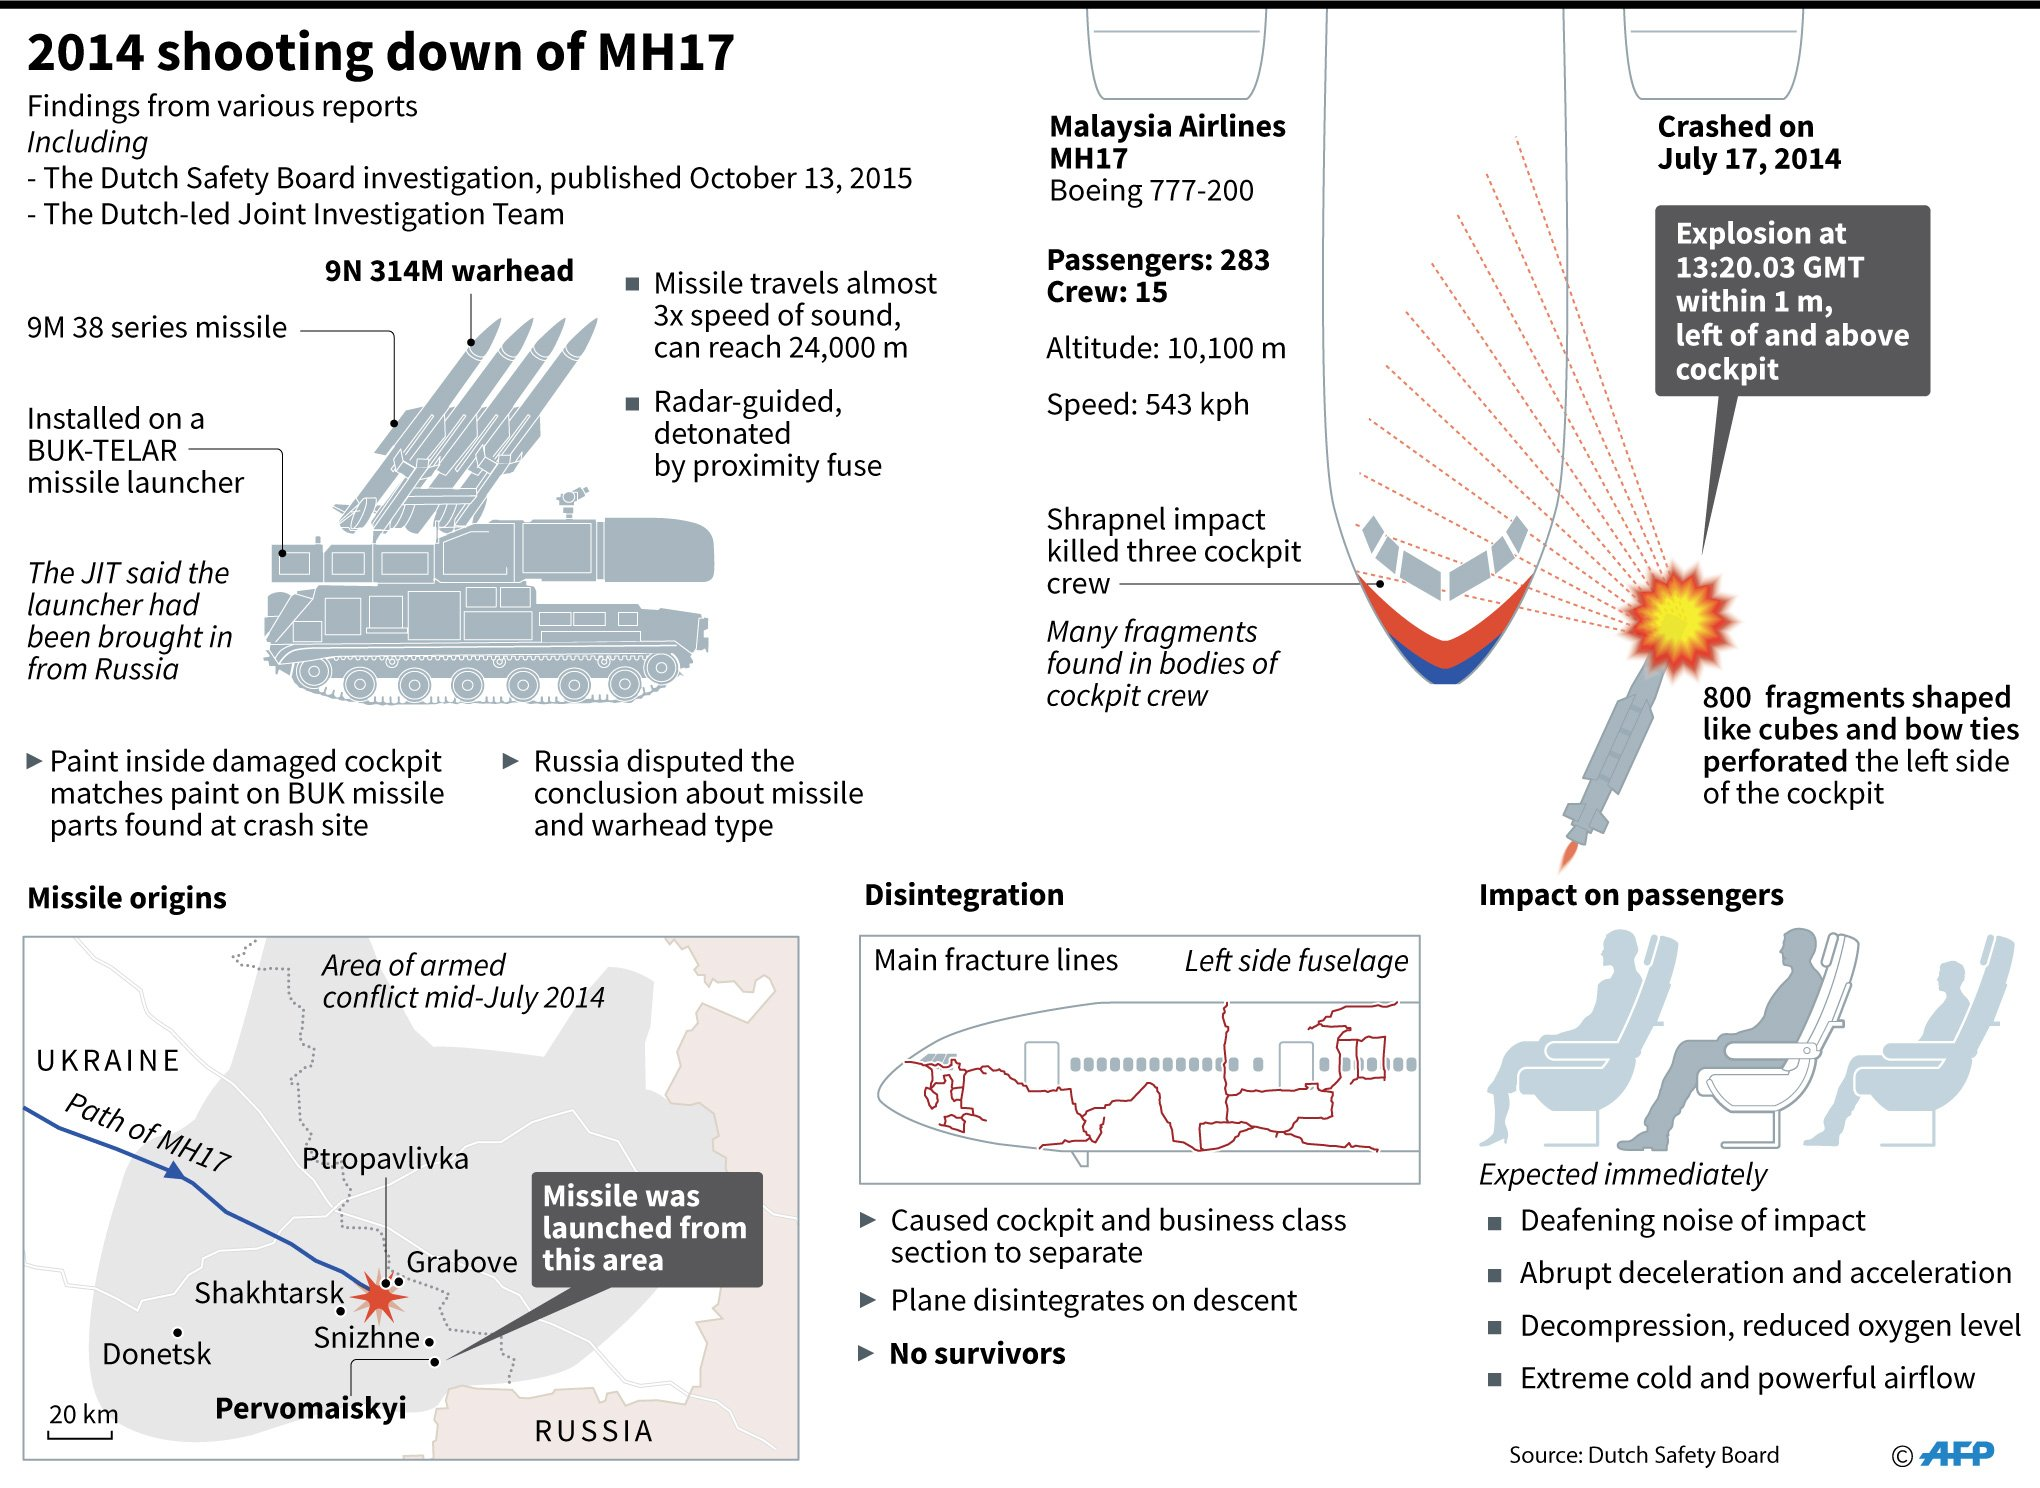 Graphic showing previously established details about the shooting down of Malaysia Airlines MH17 in 2014. (AFP)